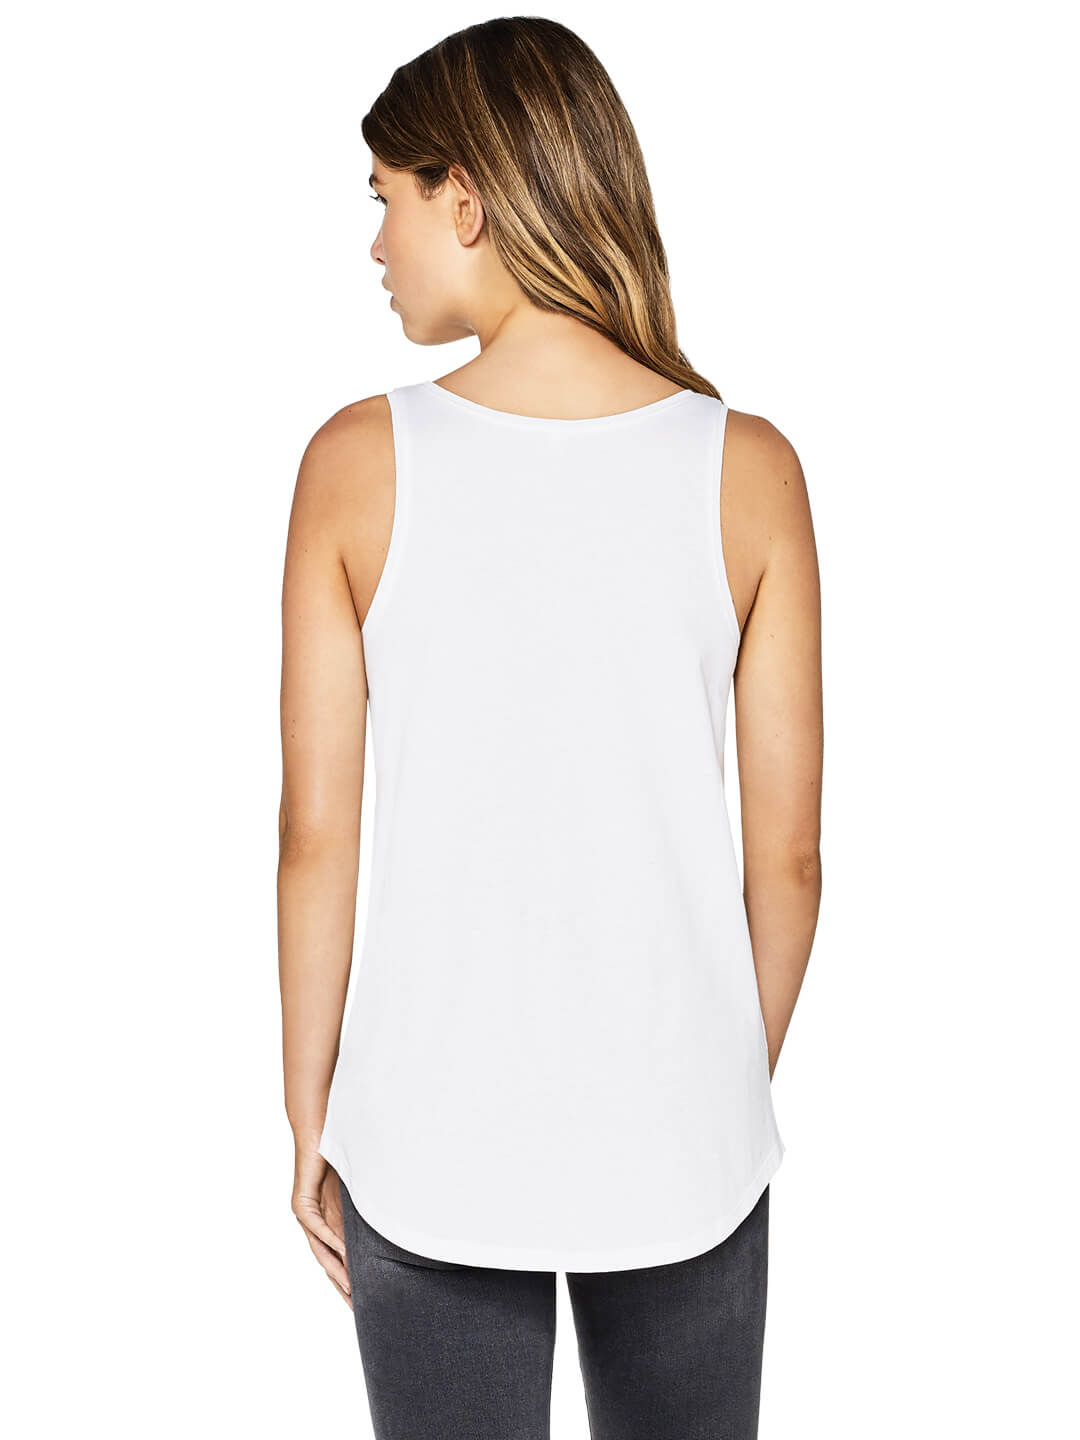 Organic Cotton Womens Vest: Earth Positive